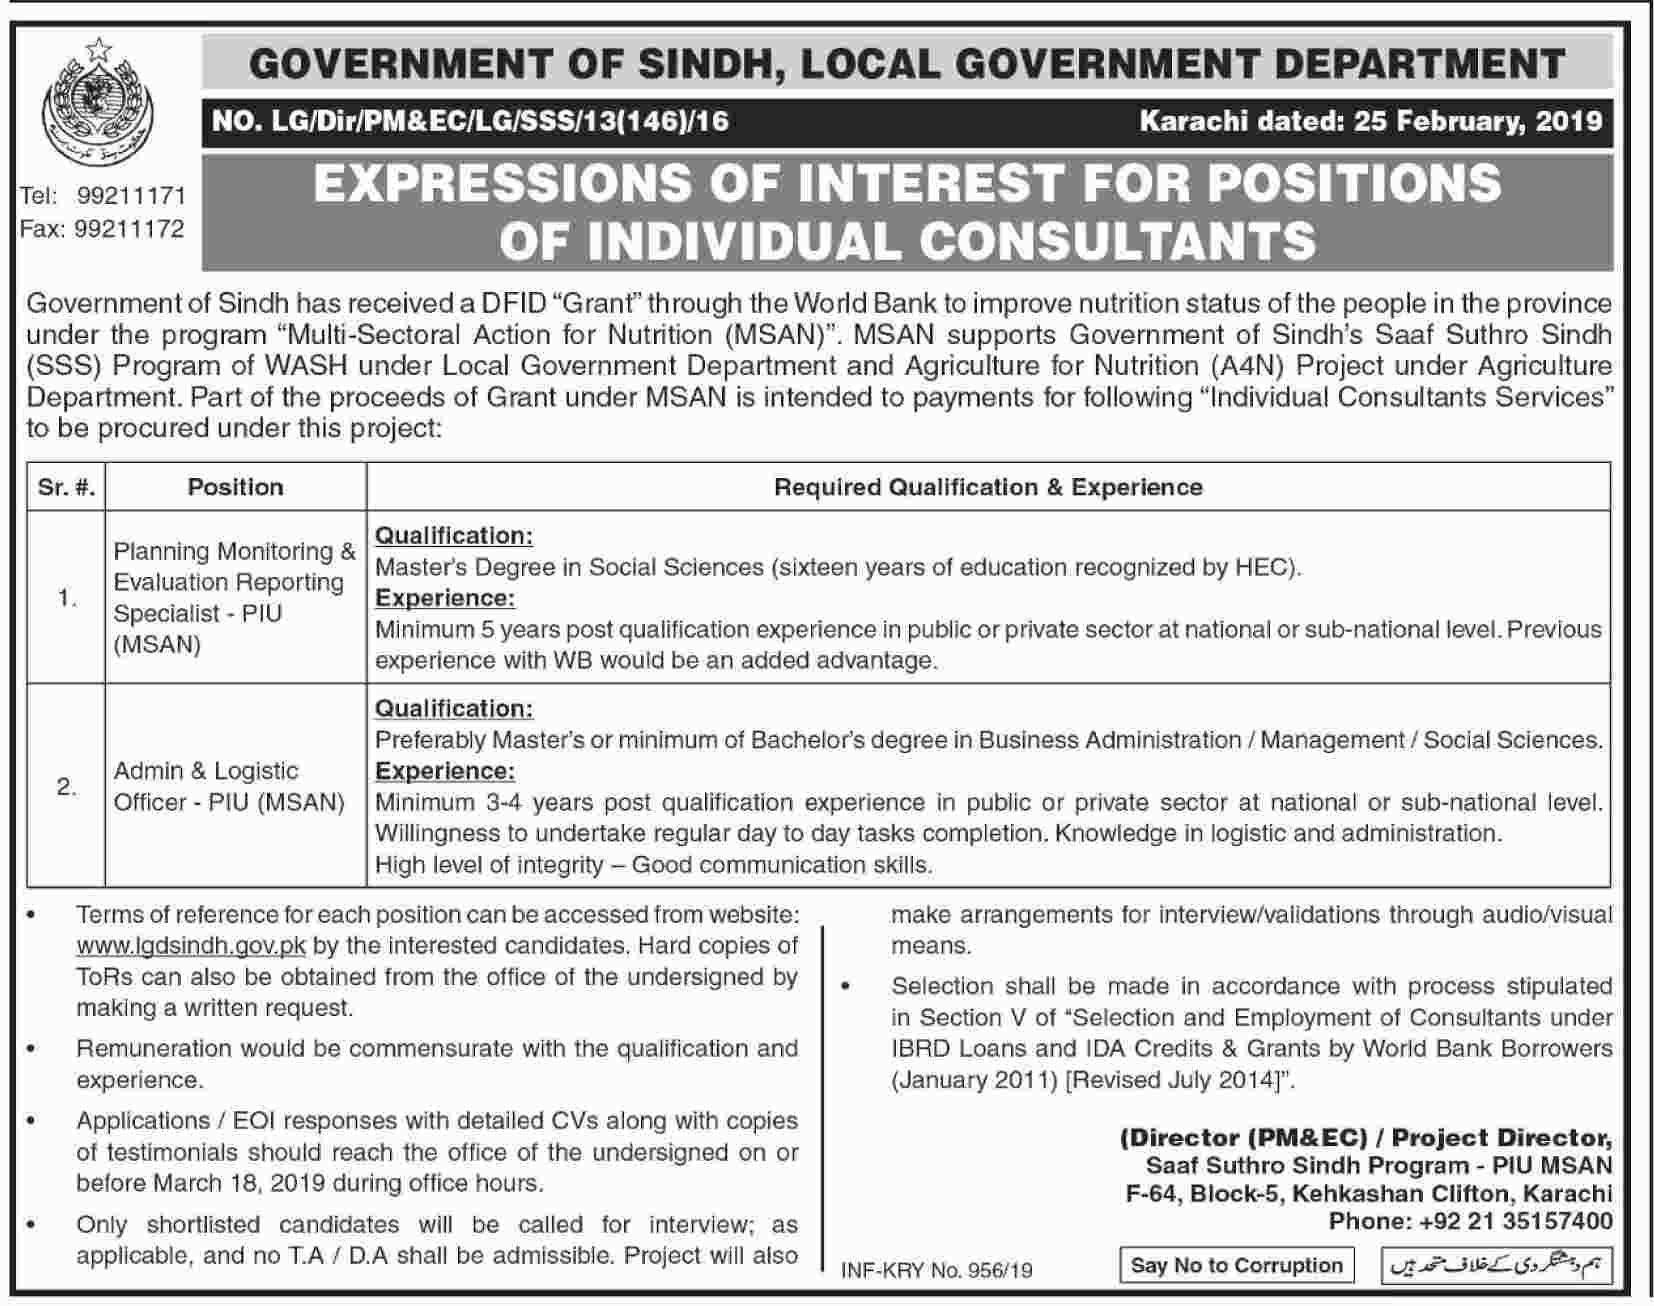 jobs in Local Government Department in Karachi -Planning Monitoring